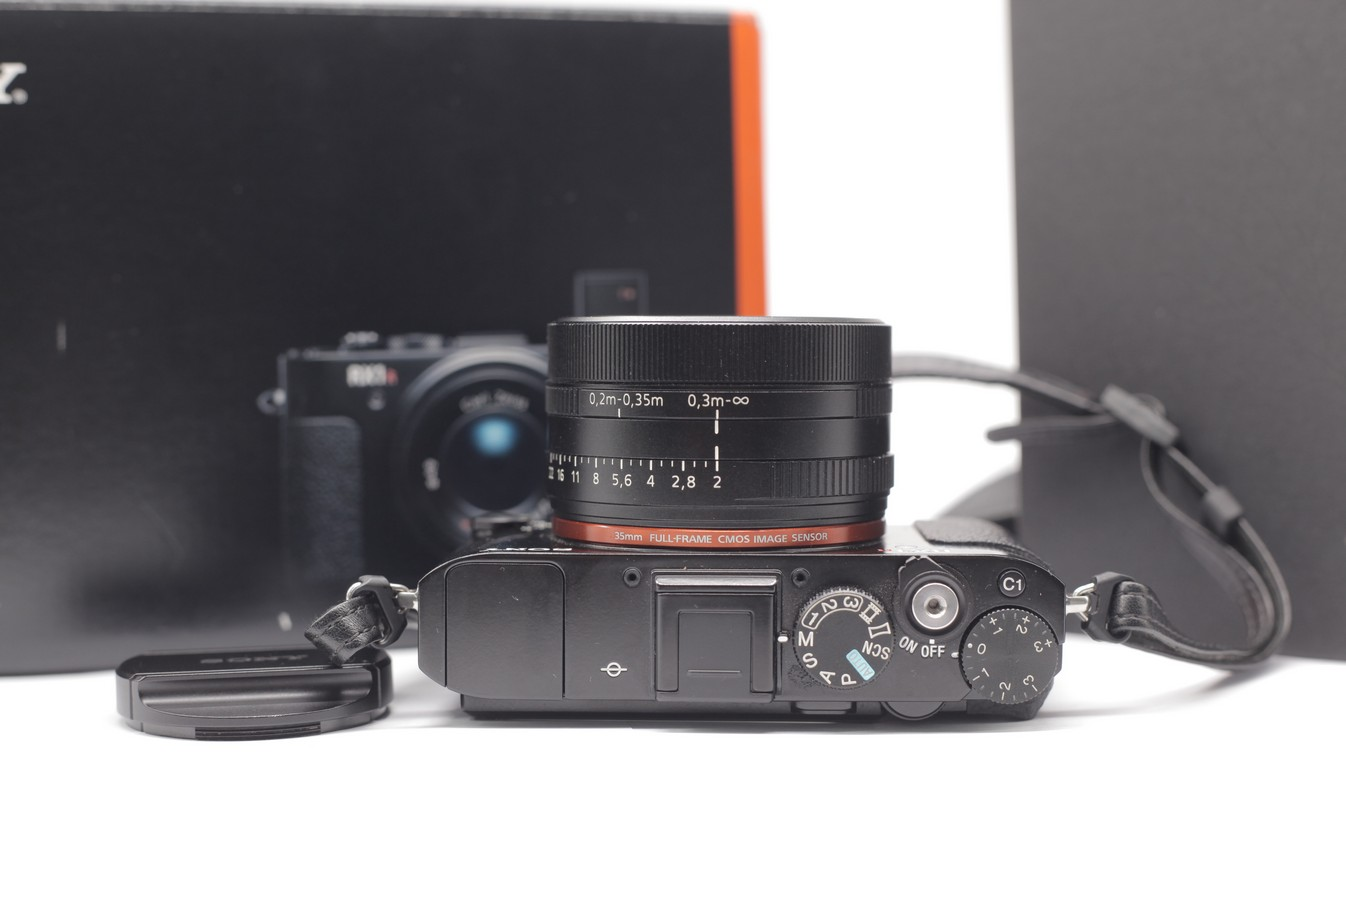 Magnificent Sony Cyber Shot Dsc Rx1 Full Frame Compact Digital ...